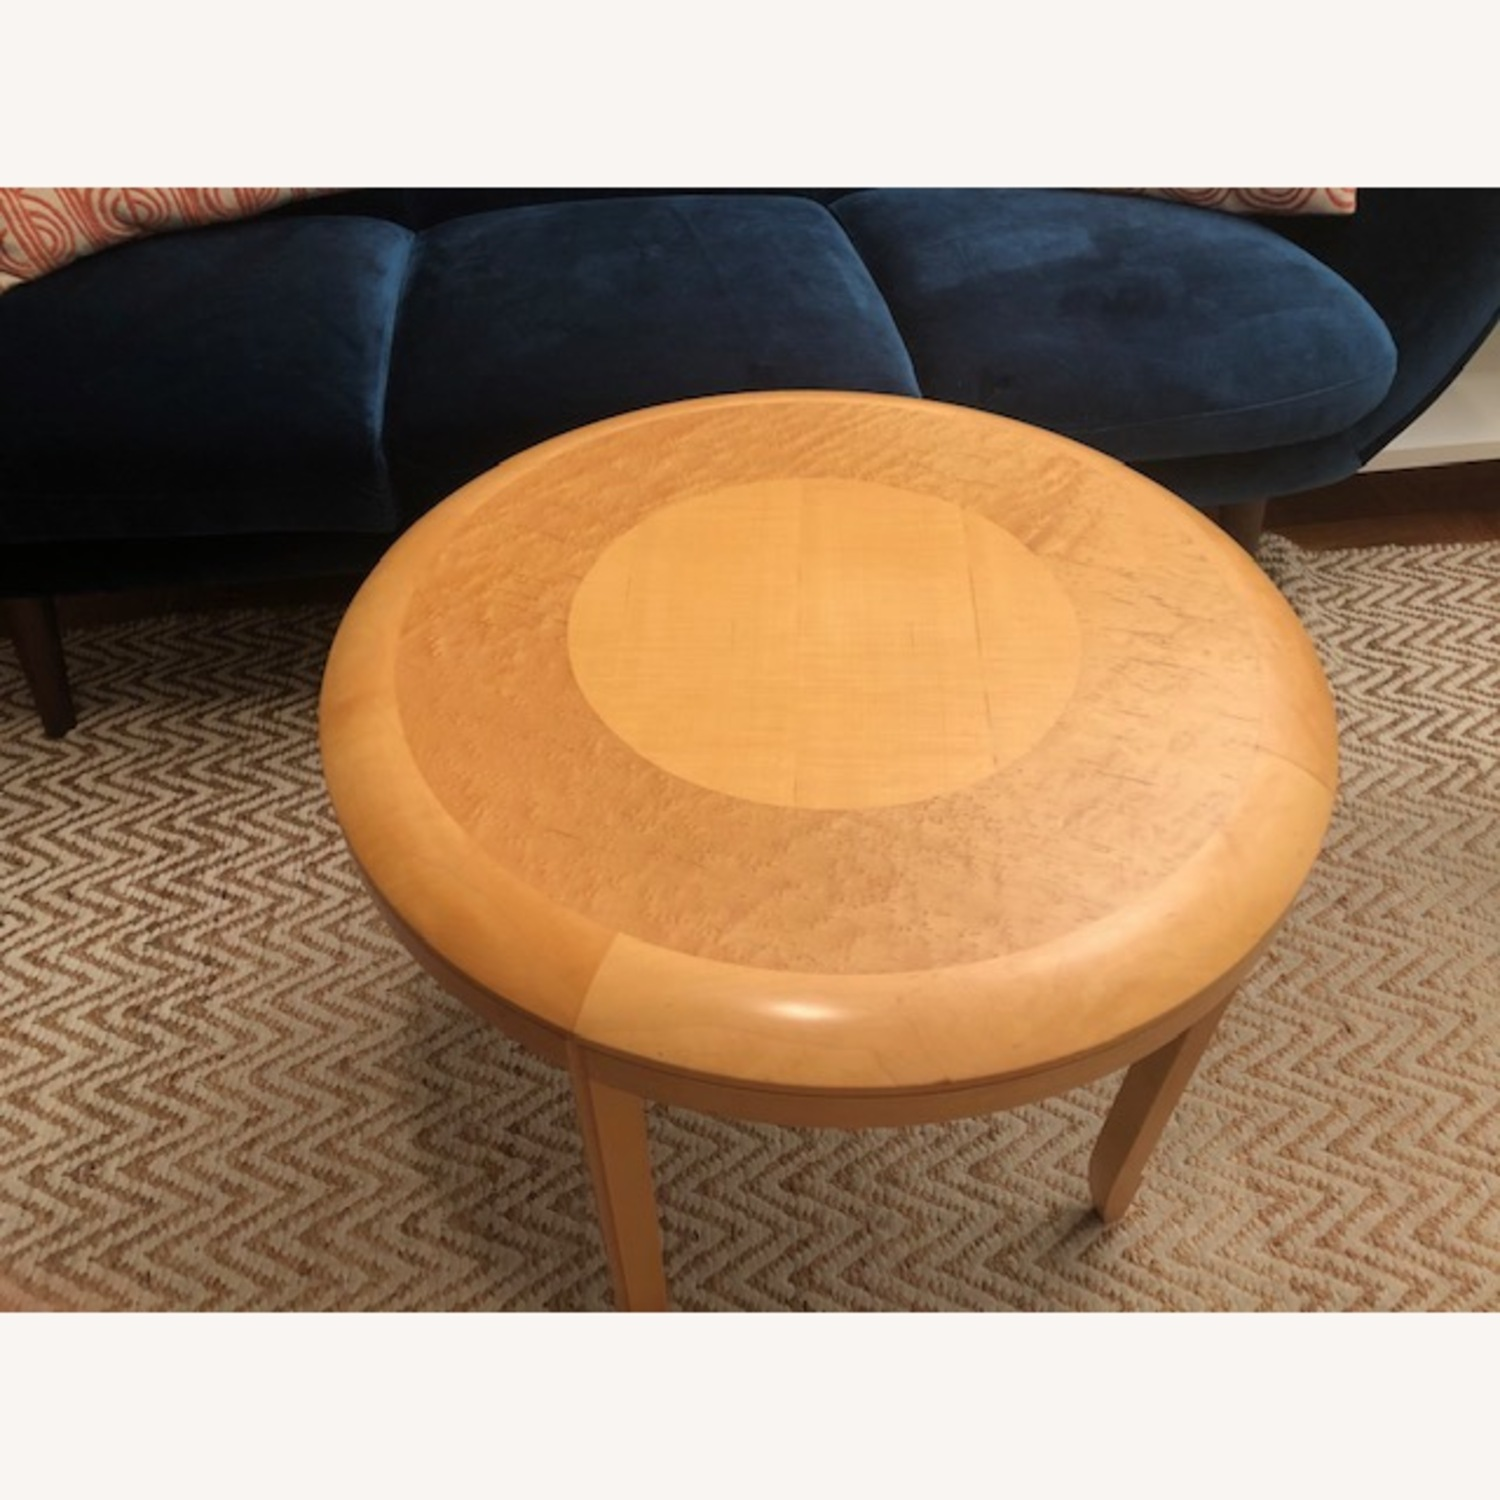 Solid Wood Round Table - image-0